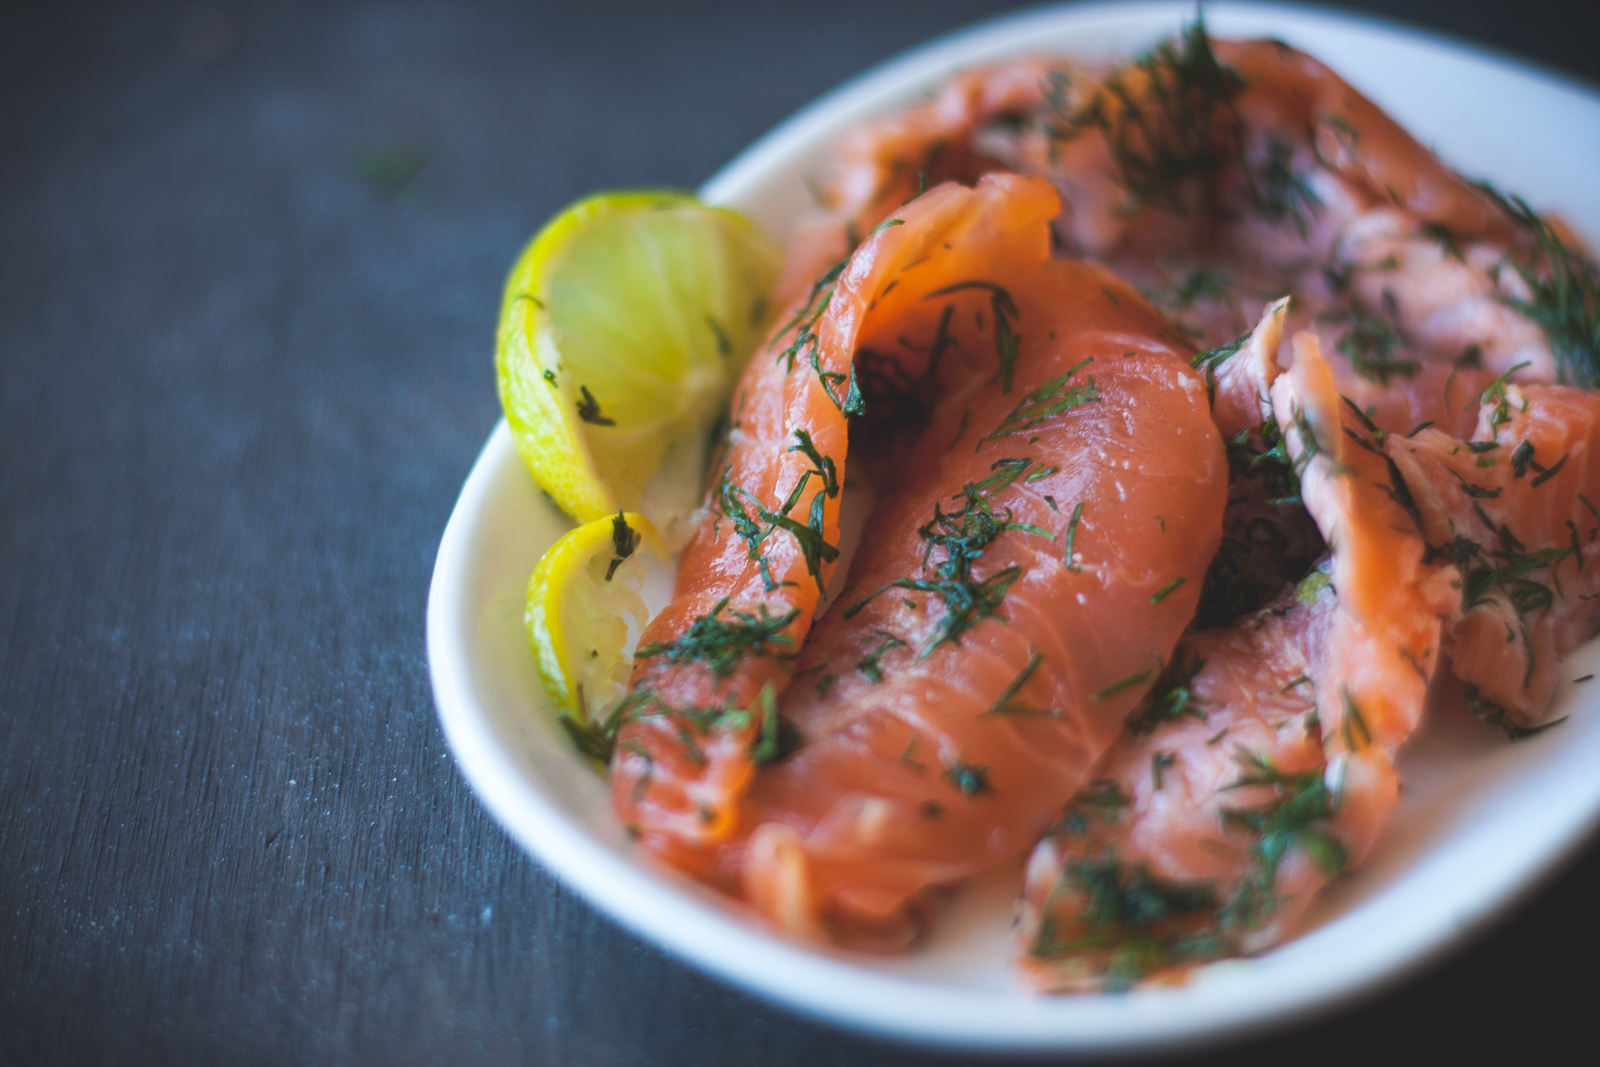 Homemade Salmon Gravlax with Sweet Dill & Mustard Sauce